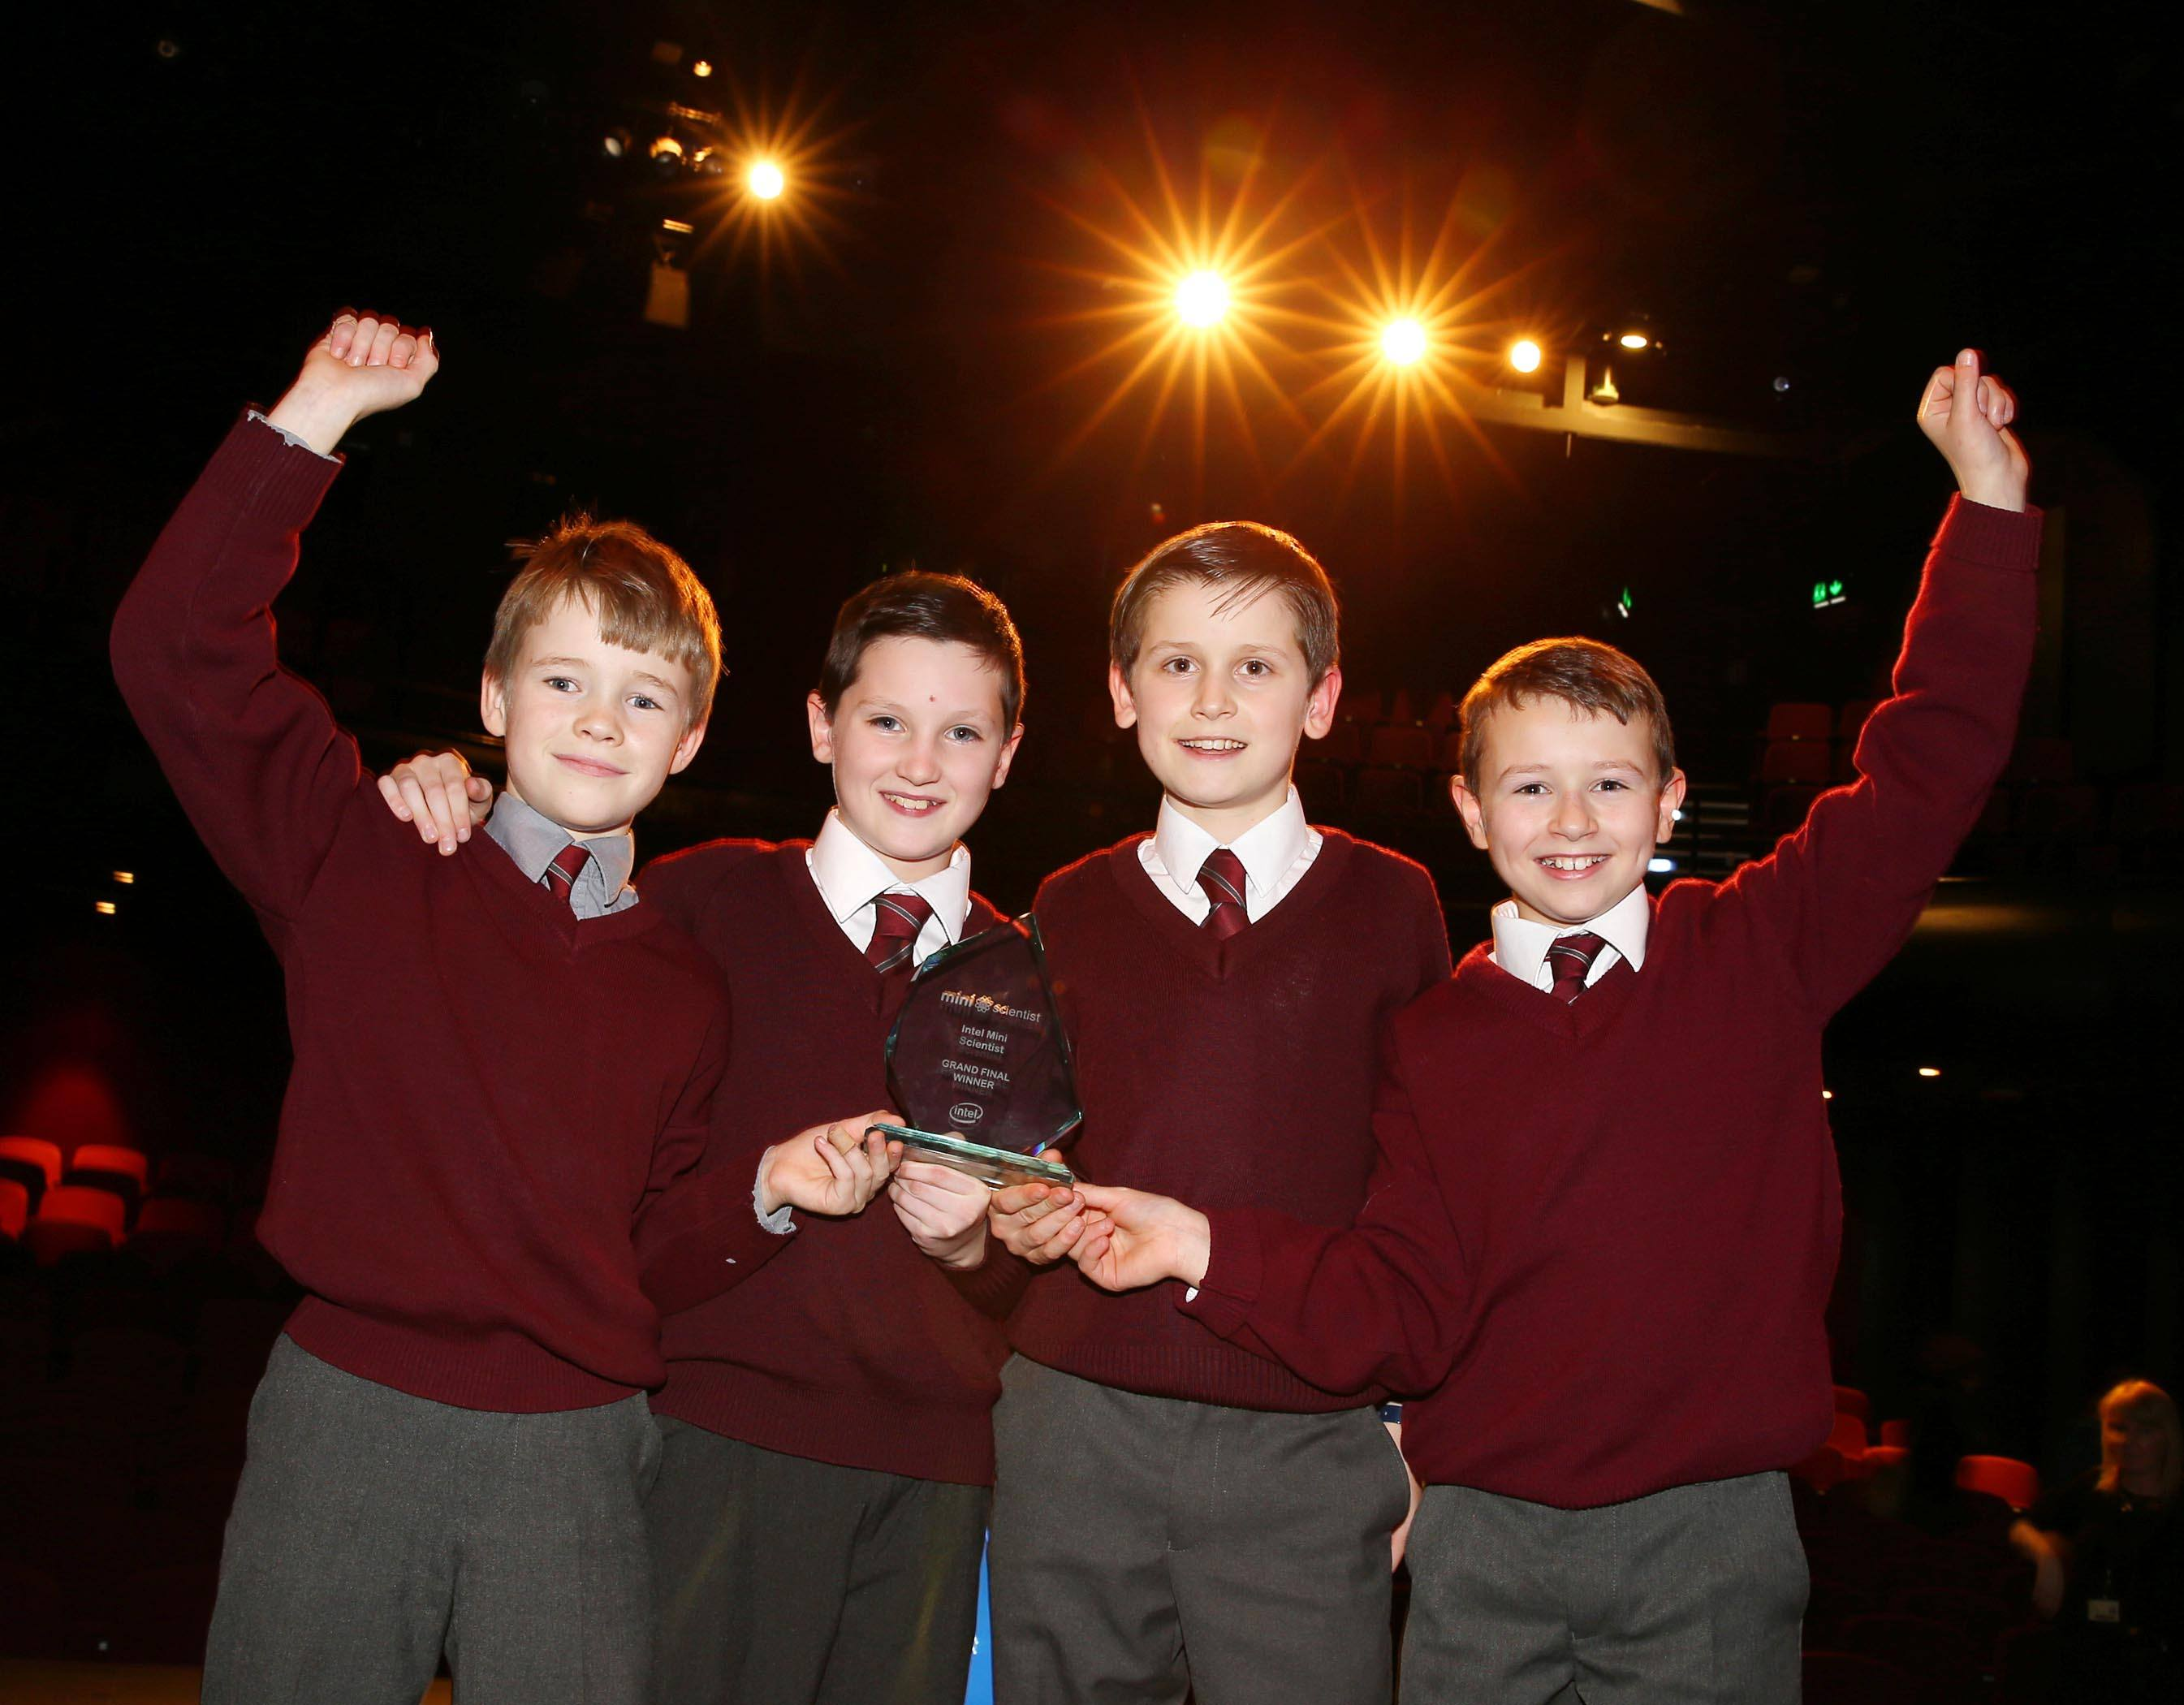 3/2/17 ***NO REPRO FEE*** Winners of the Mini Scientist, Shane Leahy, Sean O'Brien, Marc O'Brien and Eoin Carey from St. Johns National School in Cratloe Co.Clare pictured at the Grand Final awards ceremony which took place today at the Helix in Dublin City University. Badger Victim or Villain: The winning project investigated the behaviour and habitat of the Irish Badger. The myth of badgers spreading bovine TB was exposed and alternative to culling was studied in the form of a vaccination. The students also developed their own badger repellent based on their own in depth investigations. Pic: Marc O'Sullivan